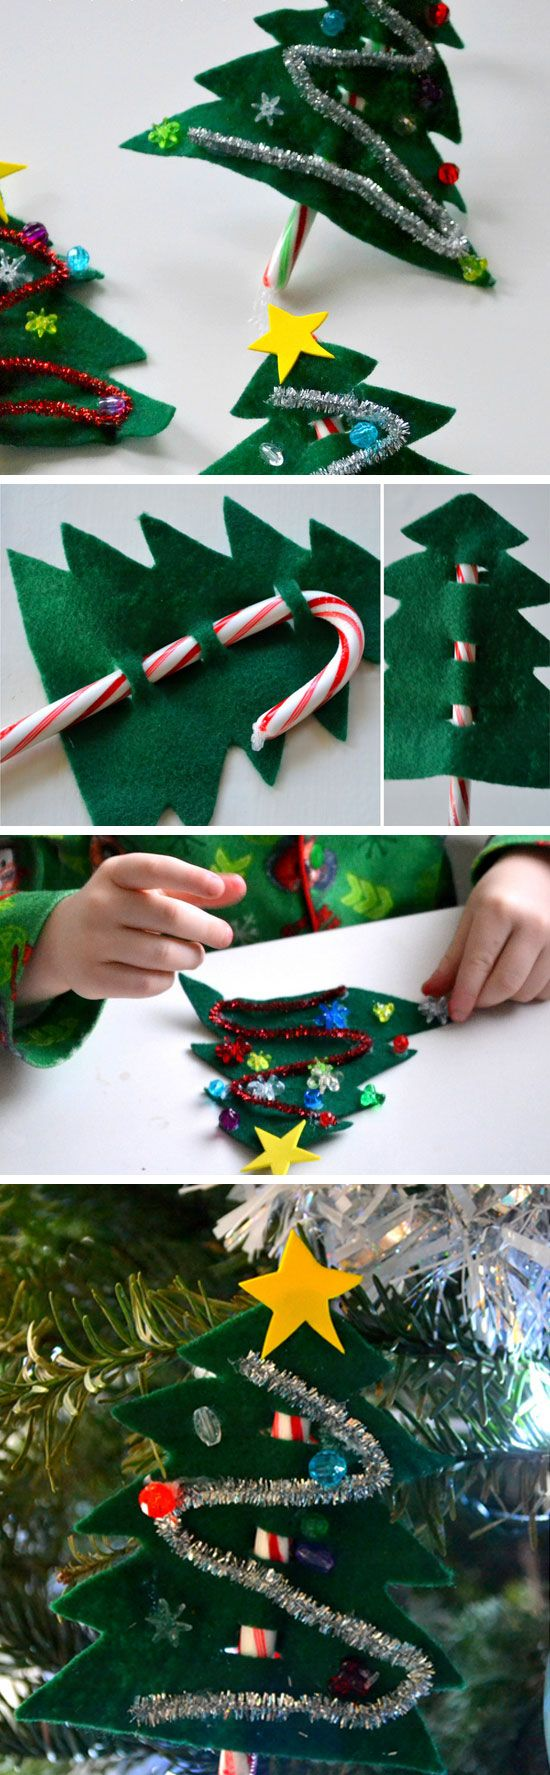 Christmas Craft Ideas With Candy Canes Part - 48: Candy Cane Christmas Trees | Click Pic For 20 DIY Christmas Decorations For  Kids To Make